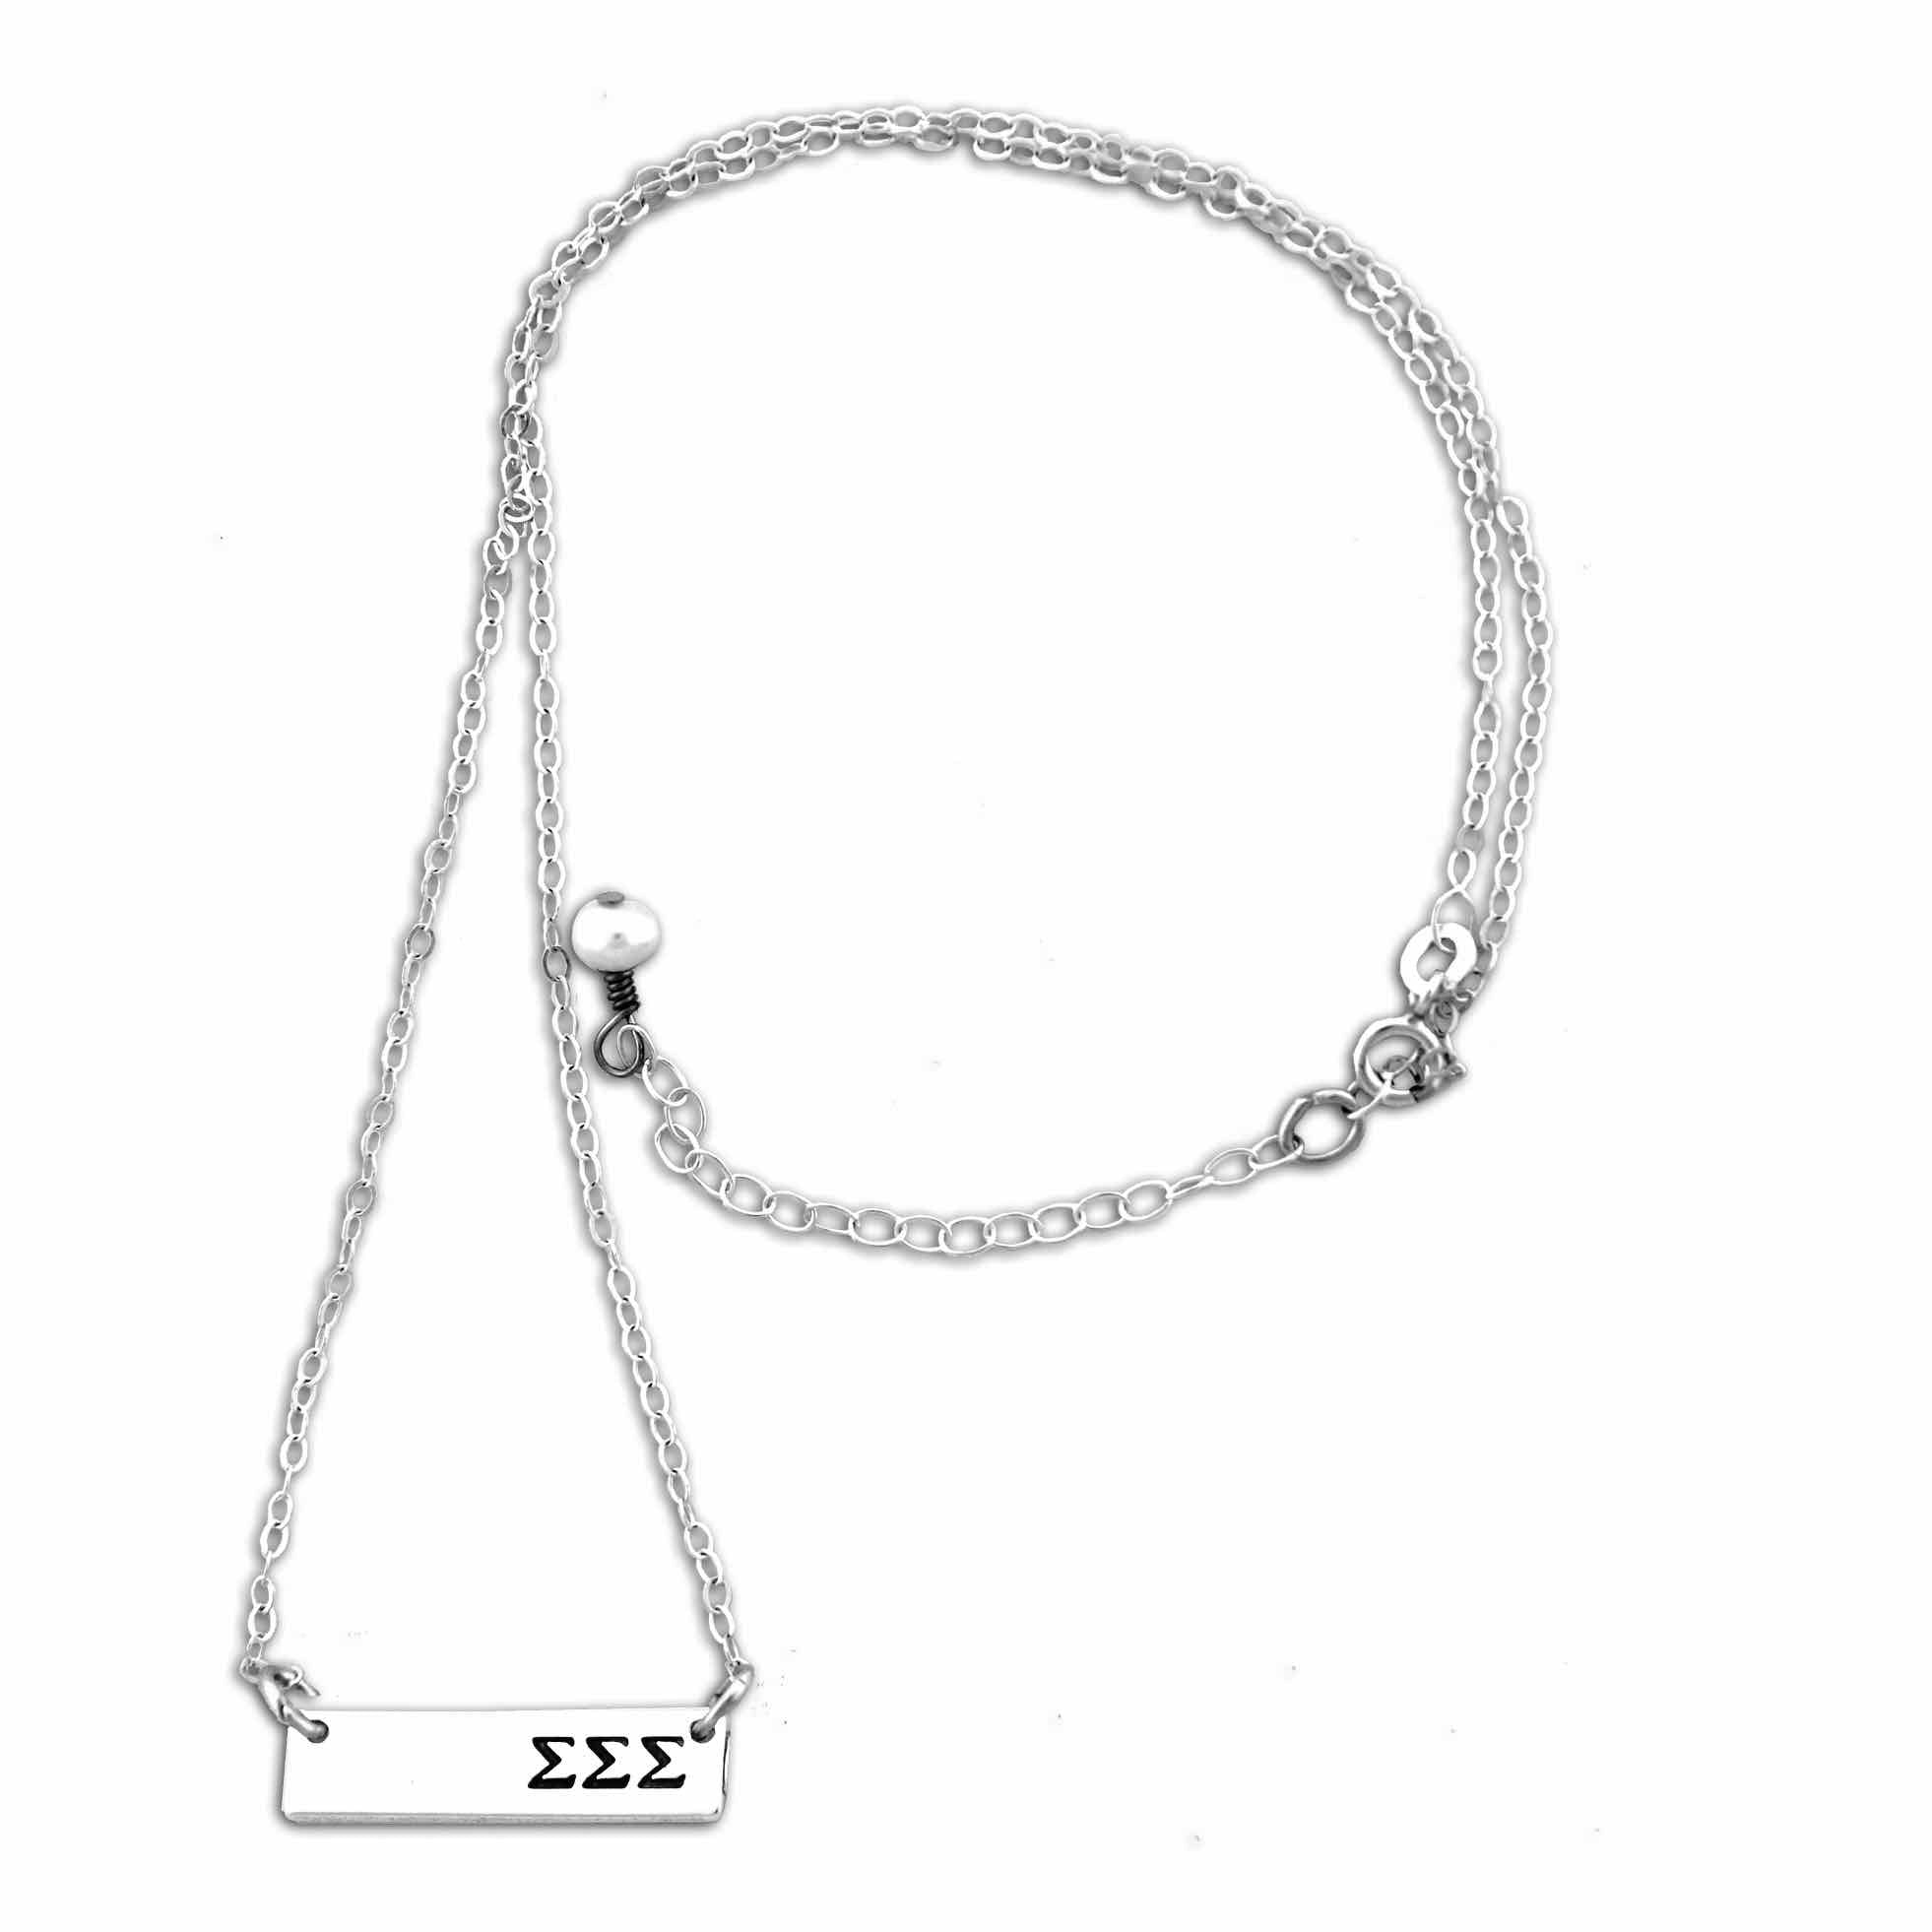 Sigma Sigma Sigma Bar necklace with adjustable chain.